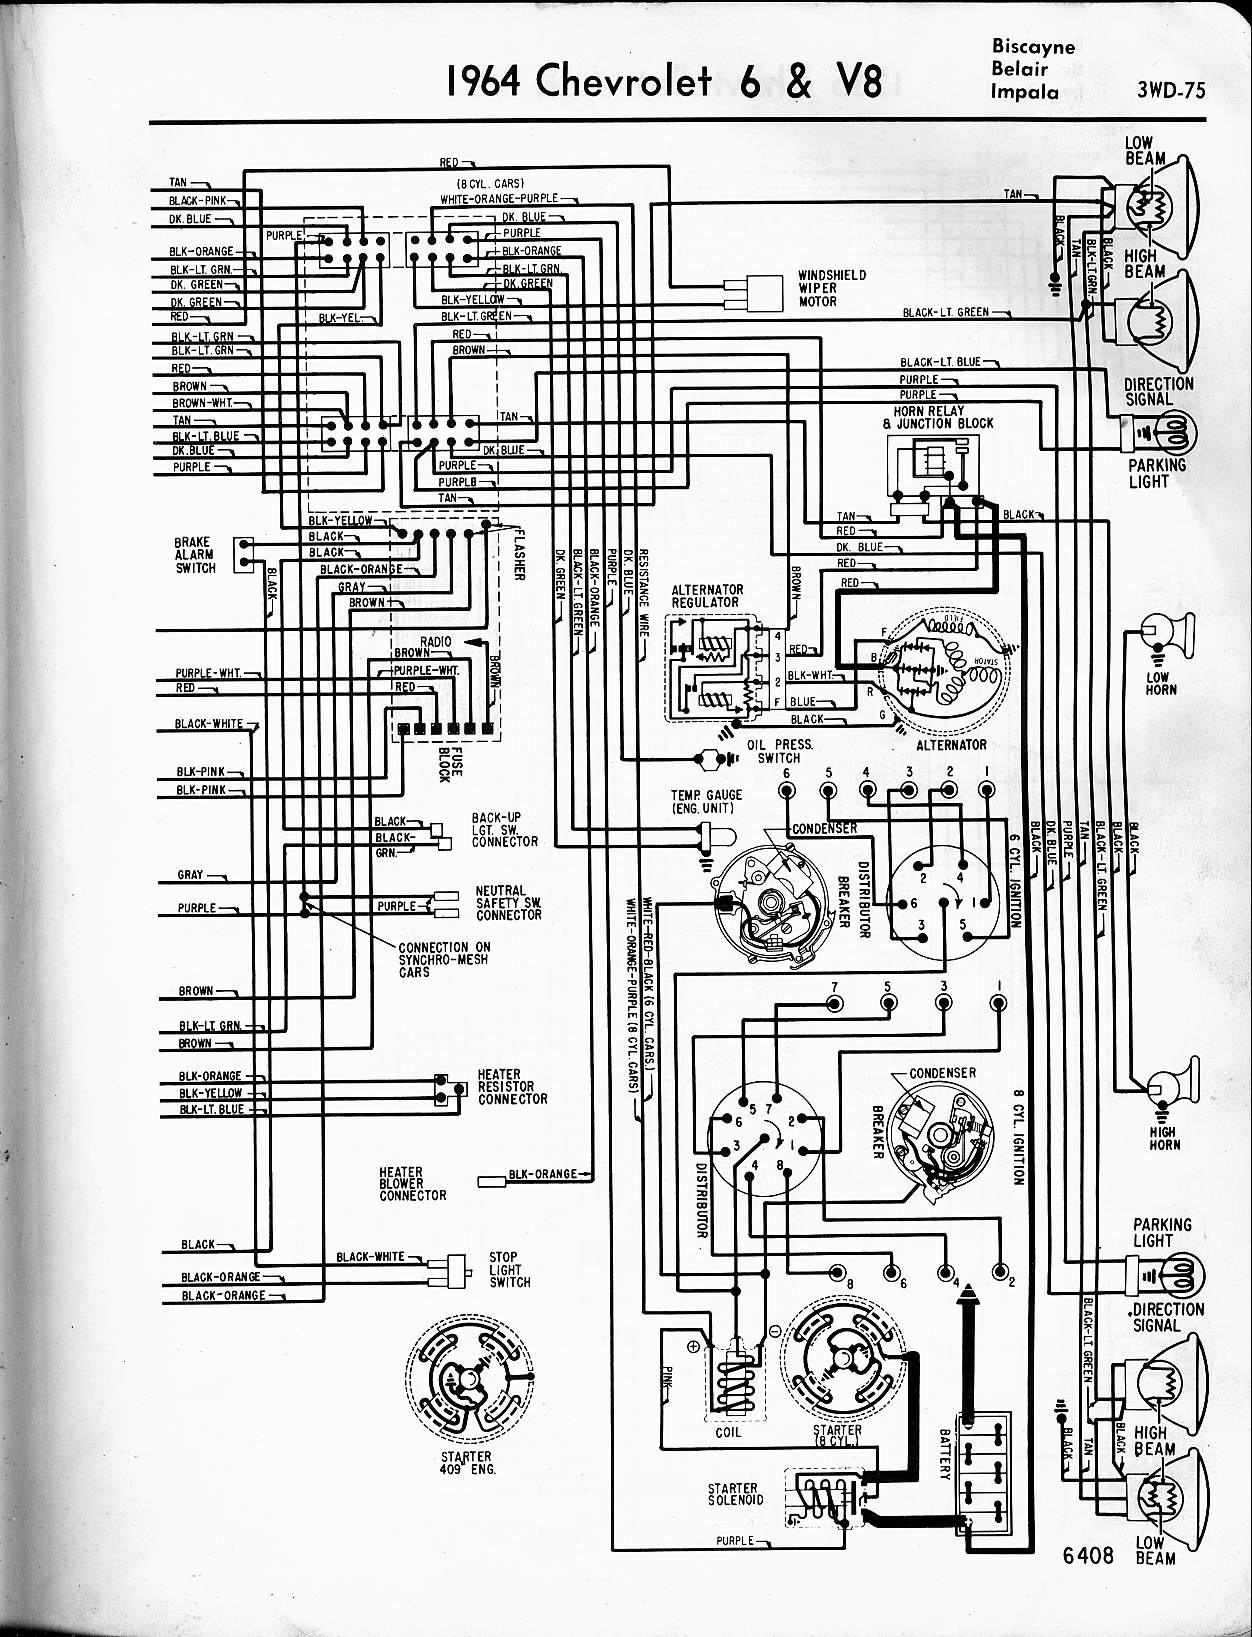 MWireChev64_3WD 075 1963 chevy impala wiring diagram 2002 chevy impala wiring diagram 1975 impala wiring diagram at virtualis.co